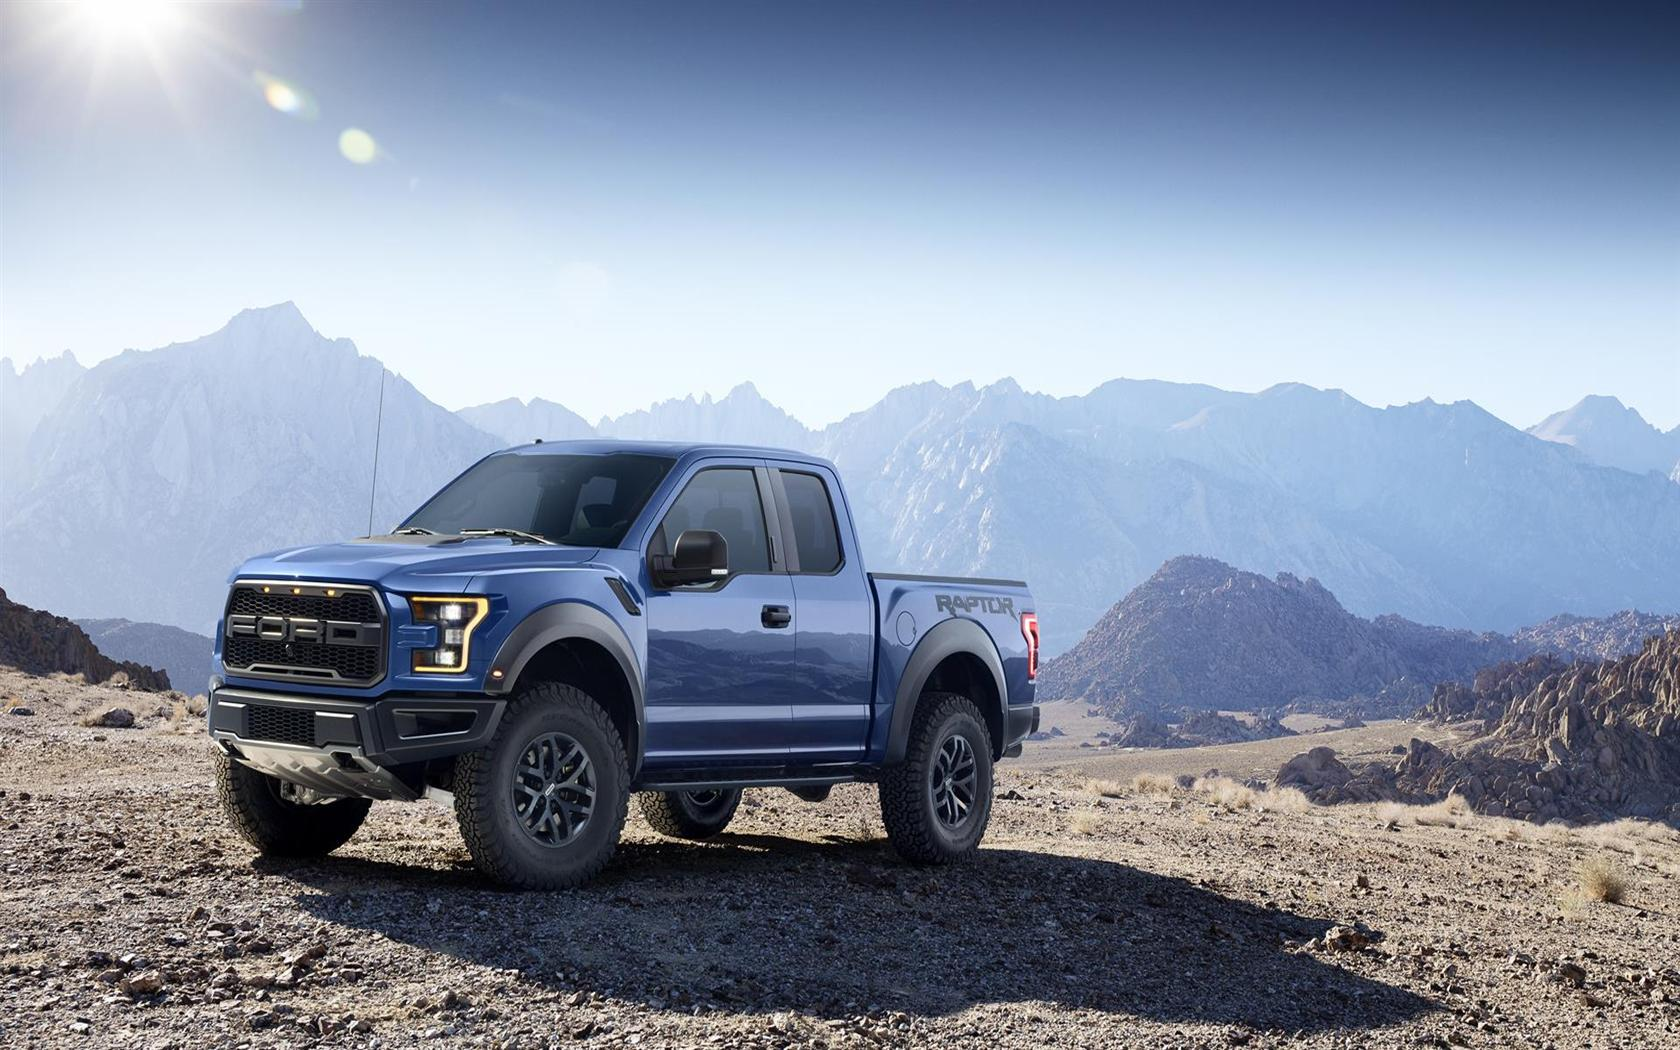 2015 ford f 150 raptor images photo 2015 ford raptor. Black Bedroom Furniture Sets. Home Design Ideas